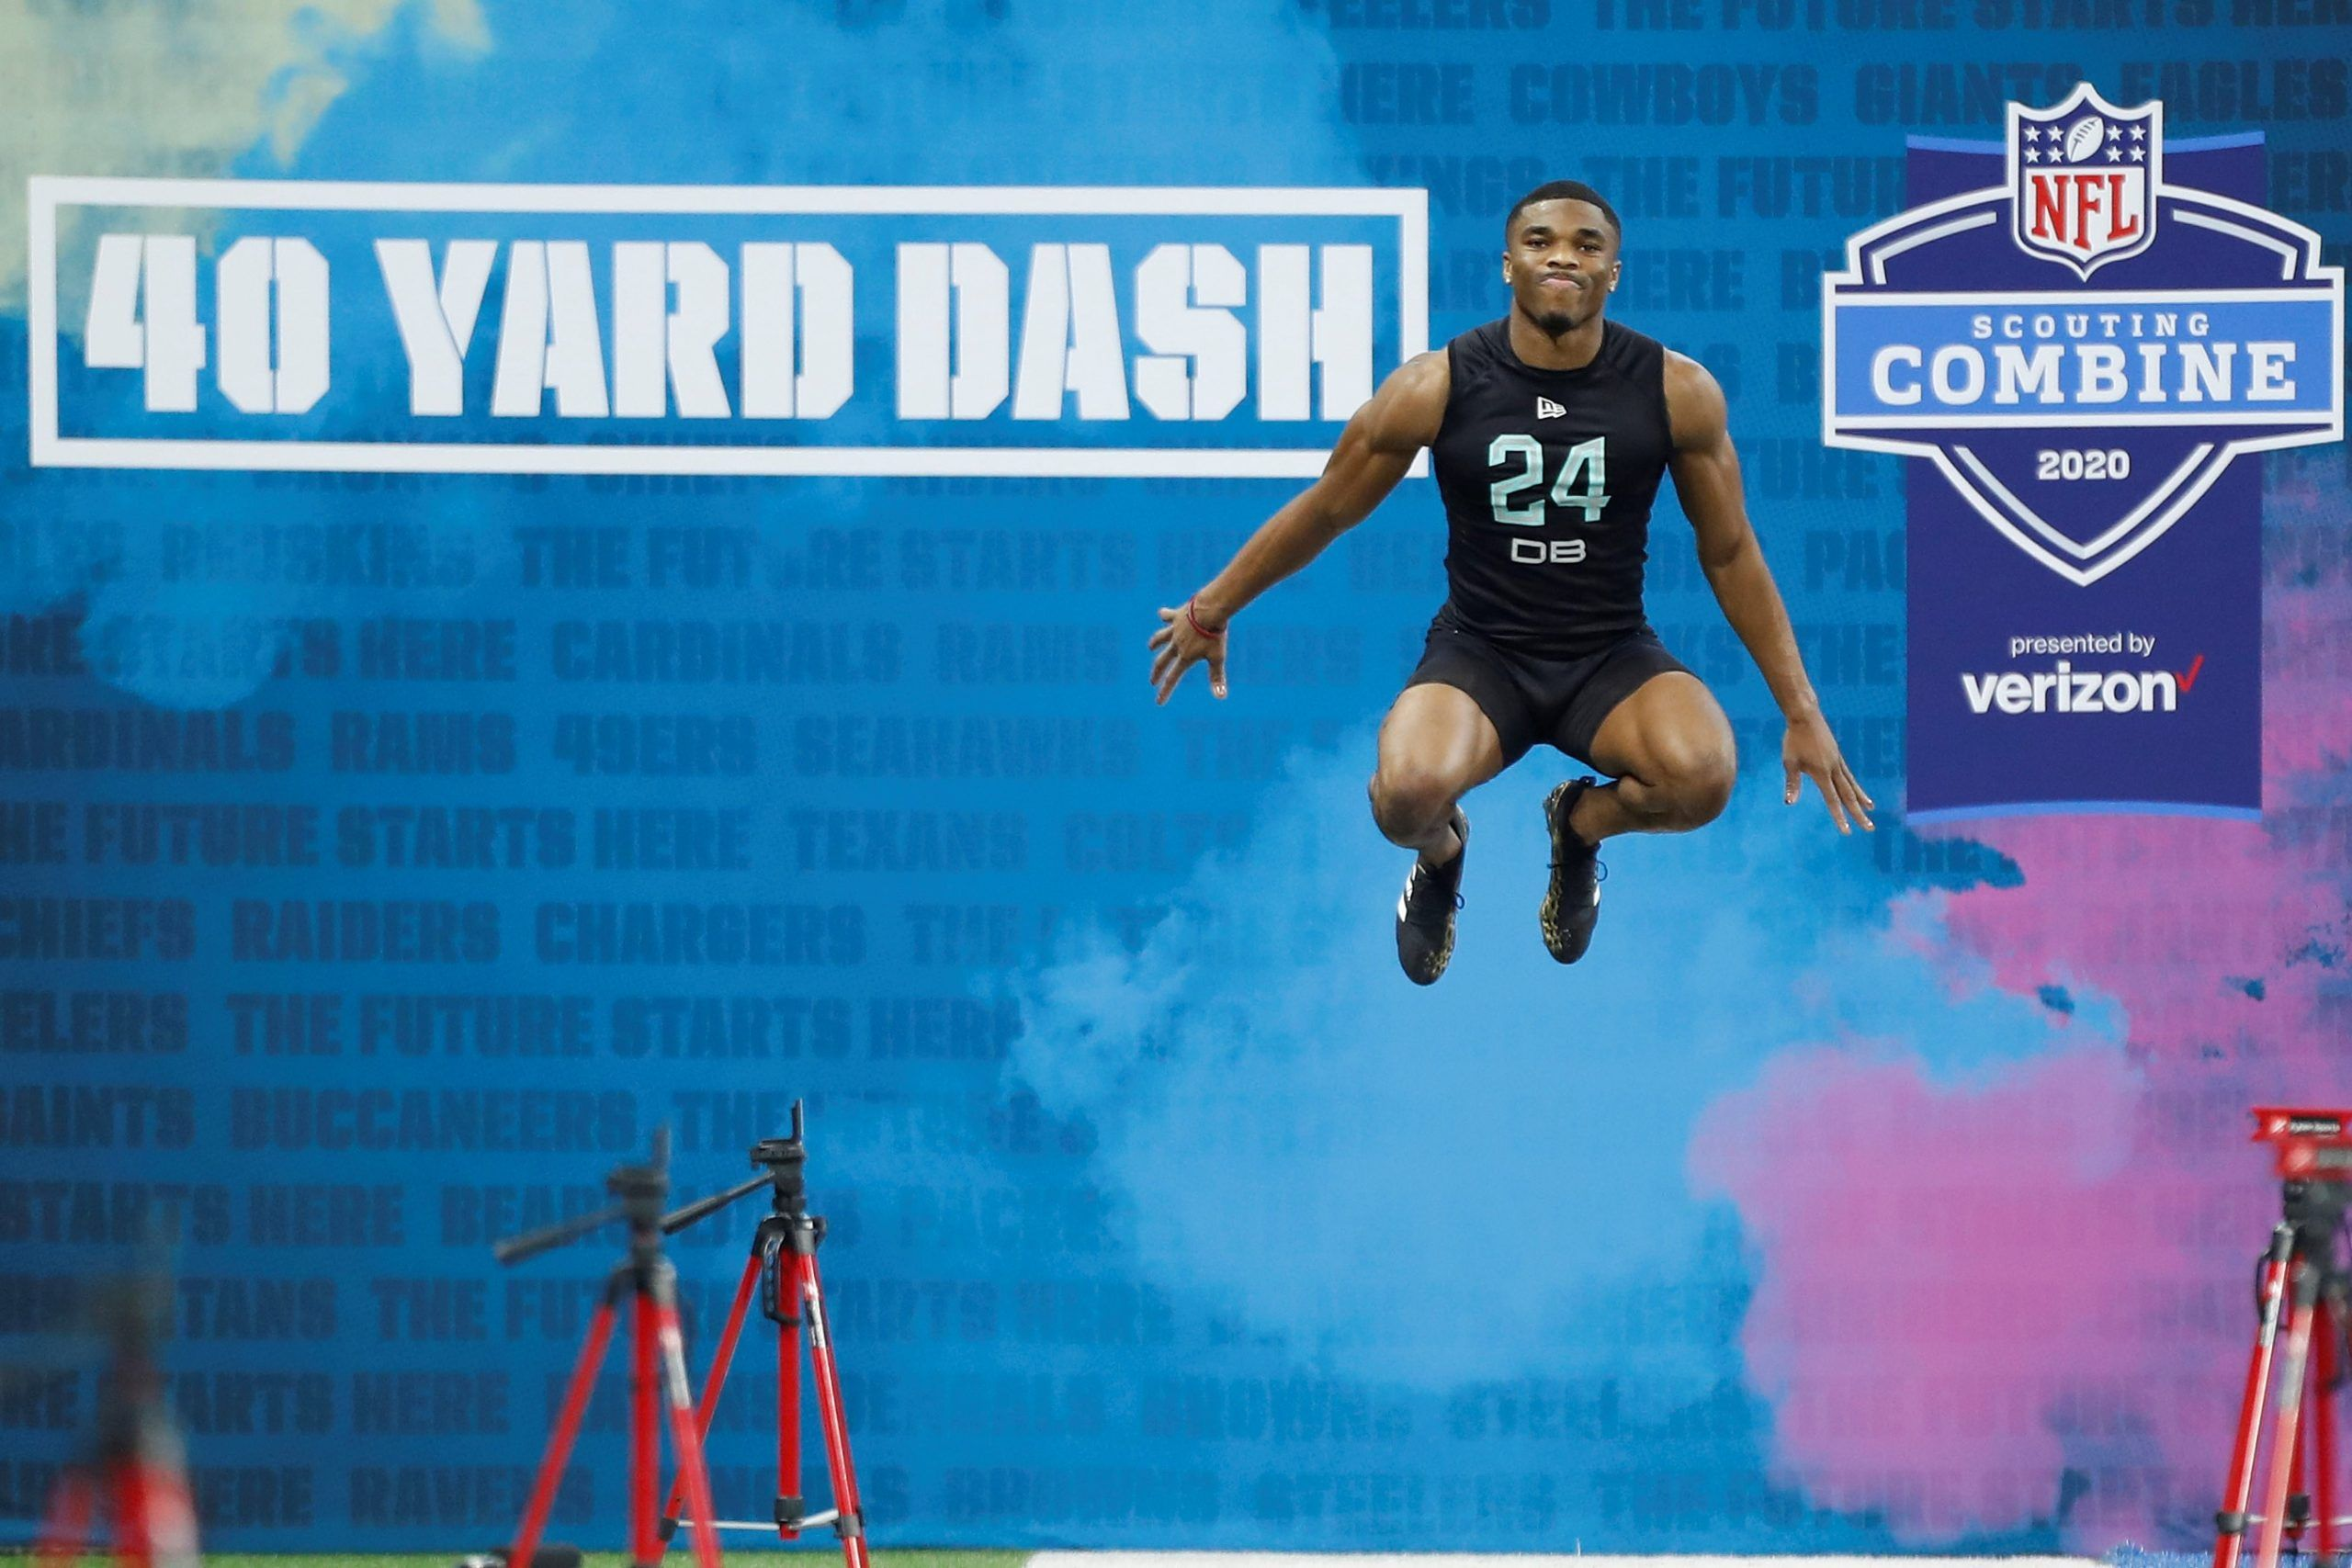 2020 Nfl Combine Day 4 Results In 2020 Nfl Sports Today Defensive Back